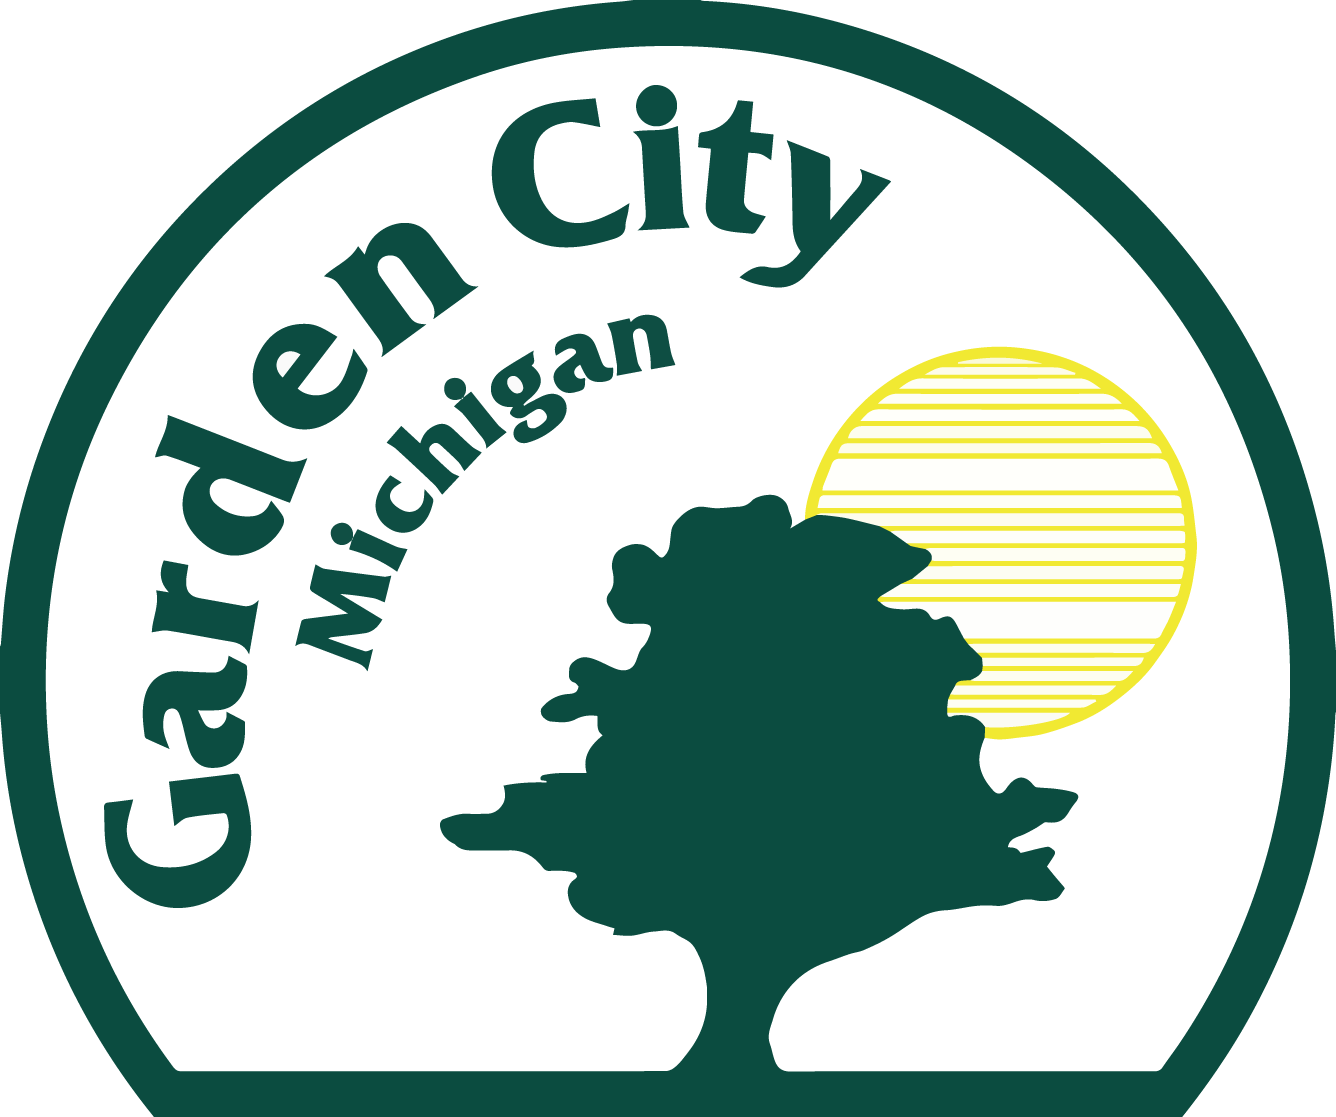 Organization logo of City of Garden City